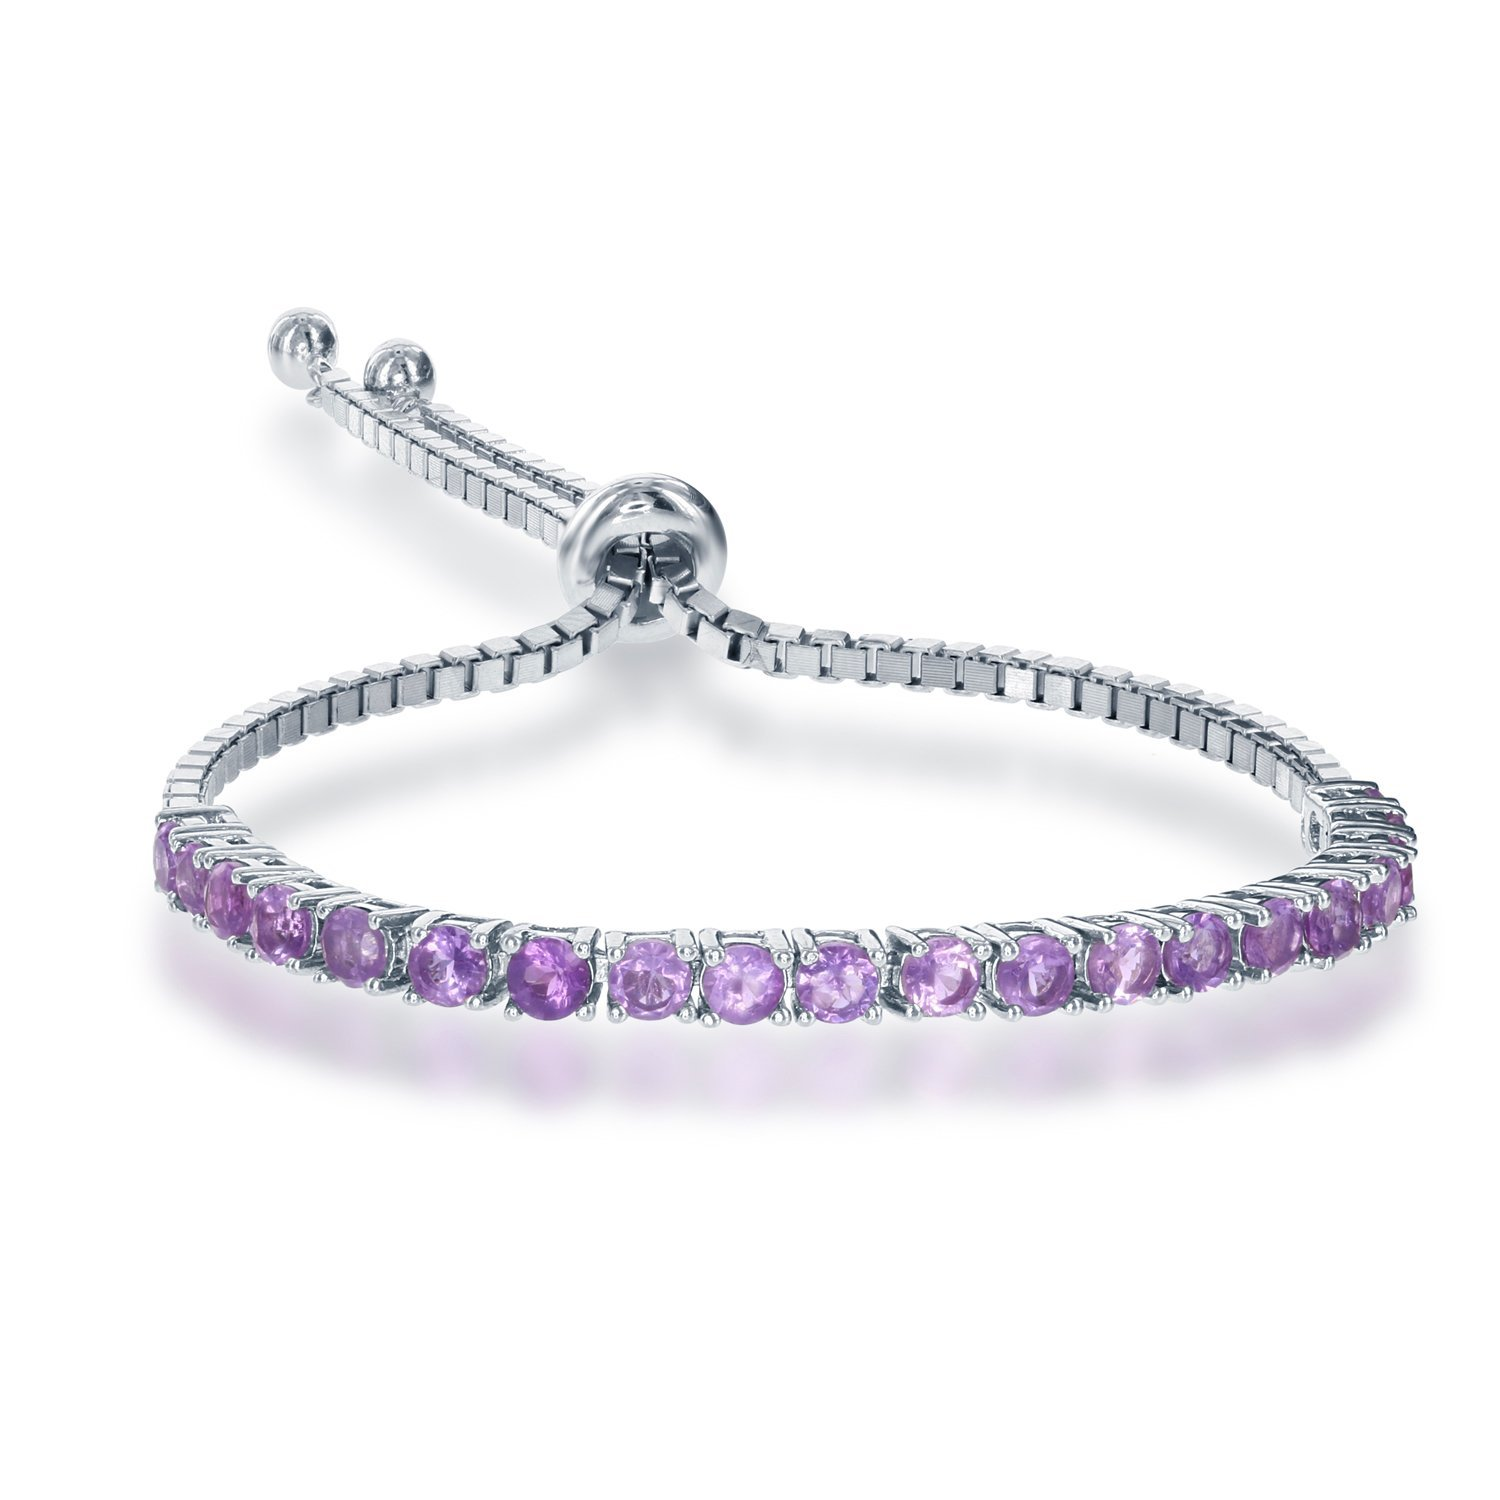 Sterling Silver Adjustable Tennis-Style 3mm Amethyst Gemstone Italian Bracelet